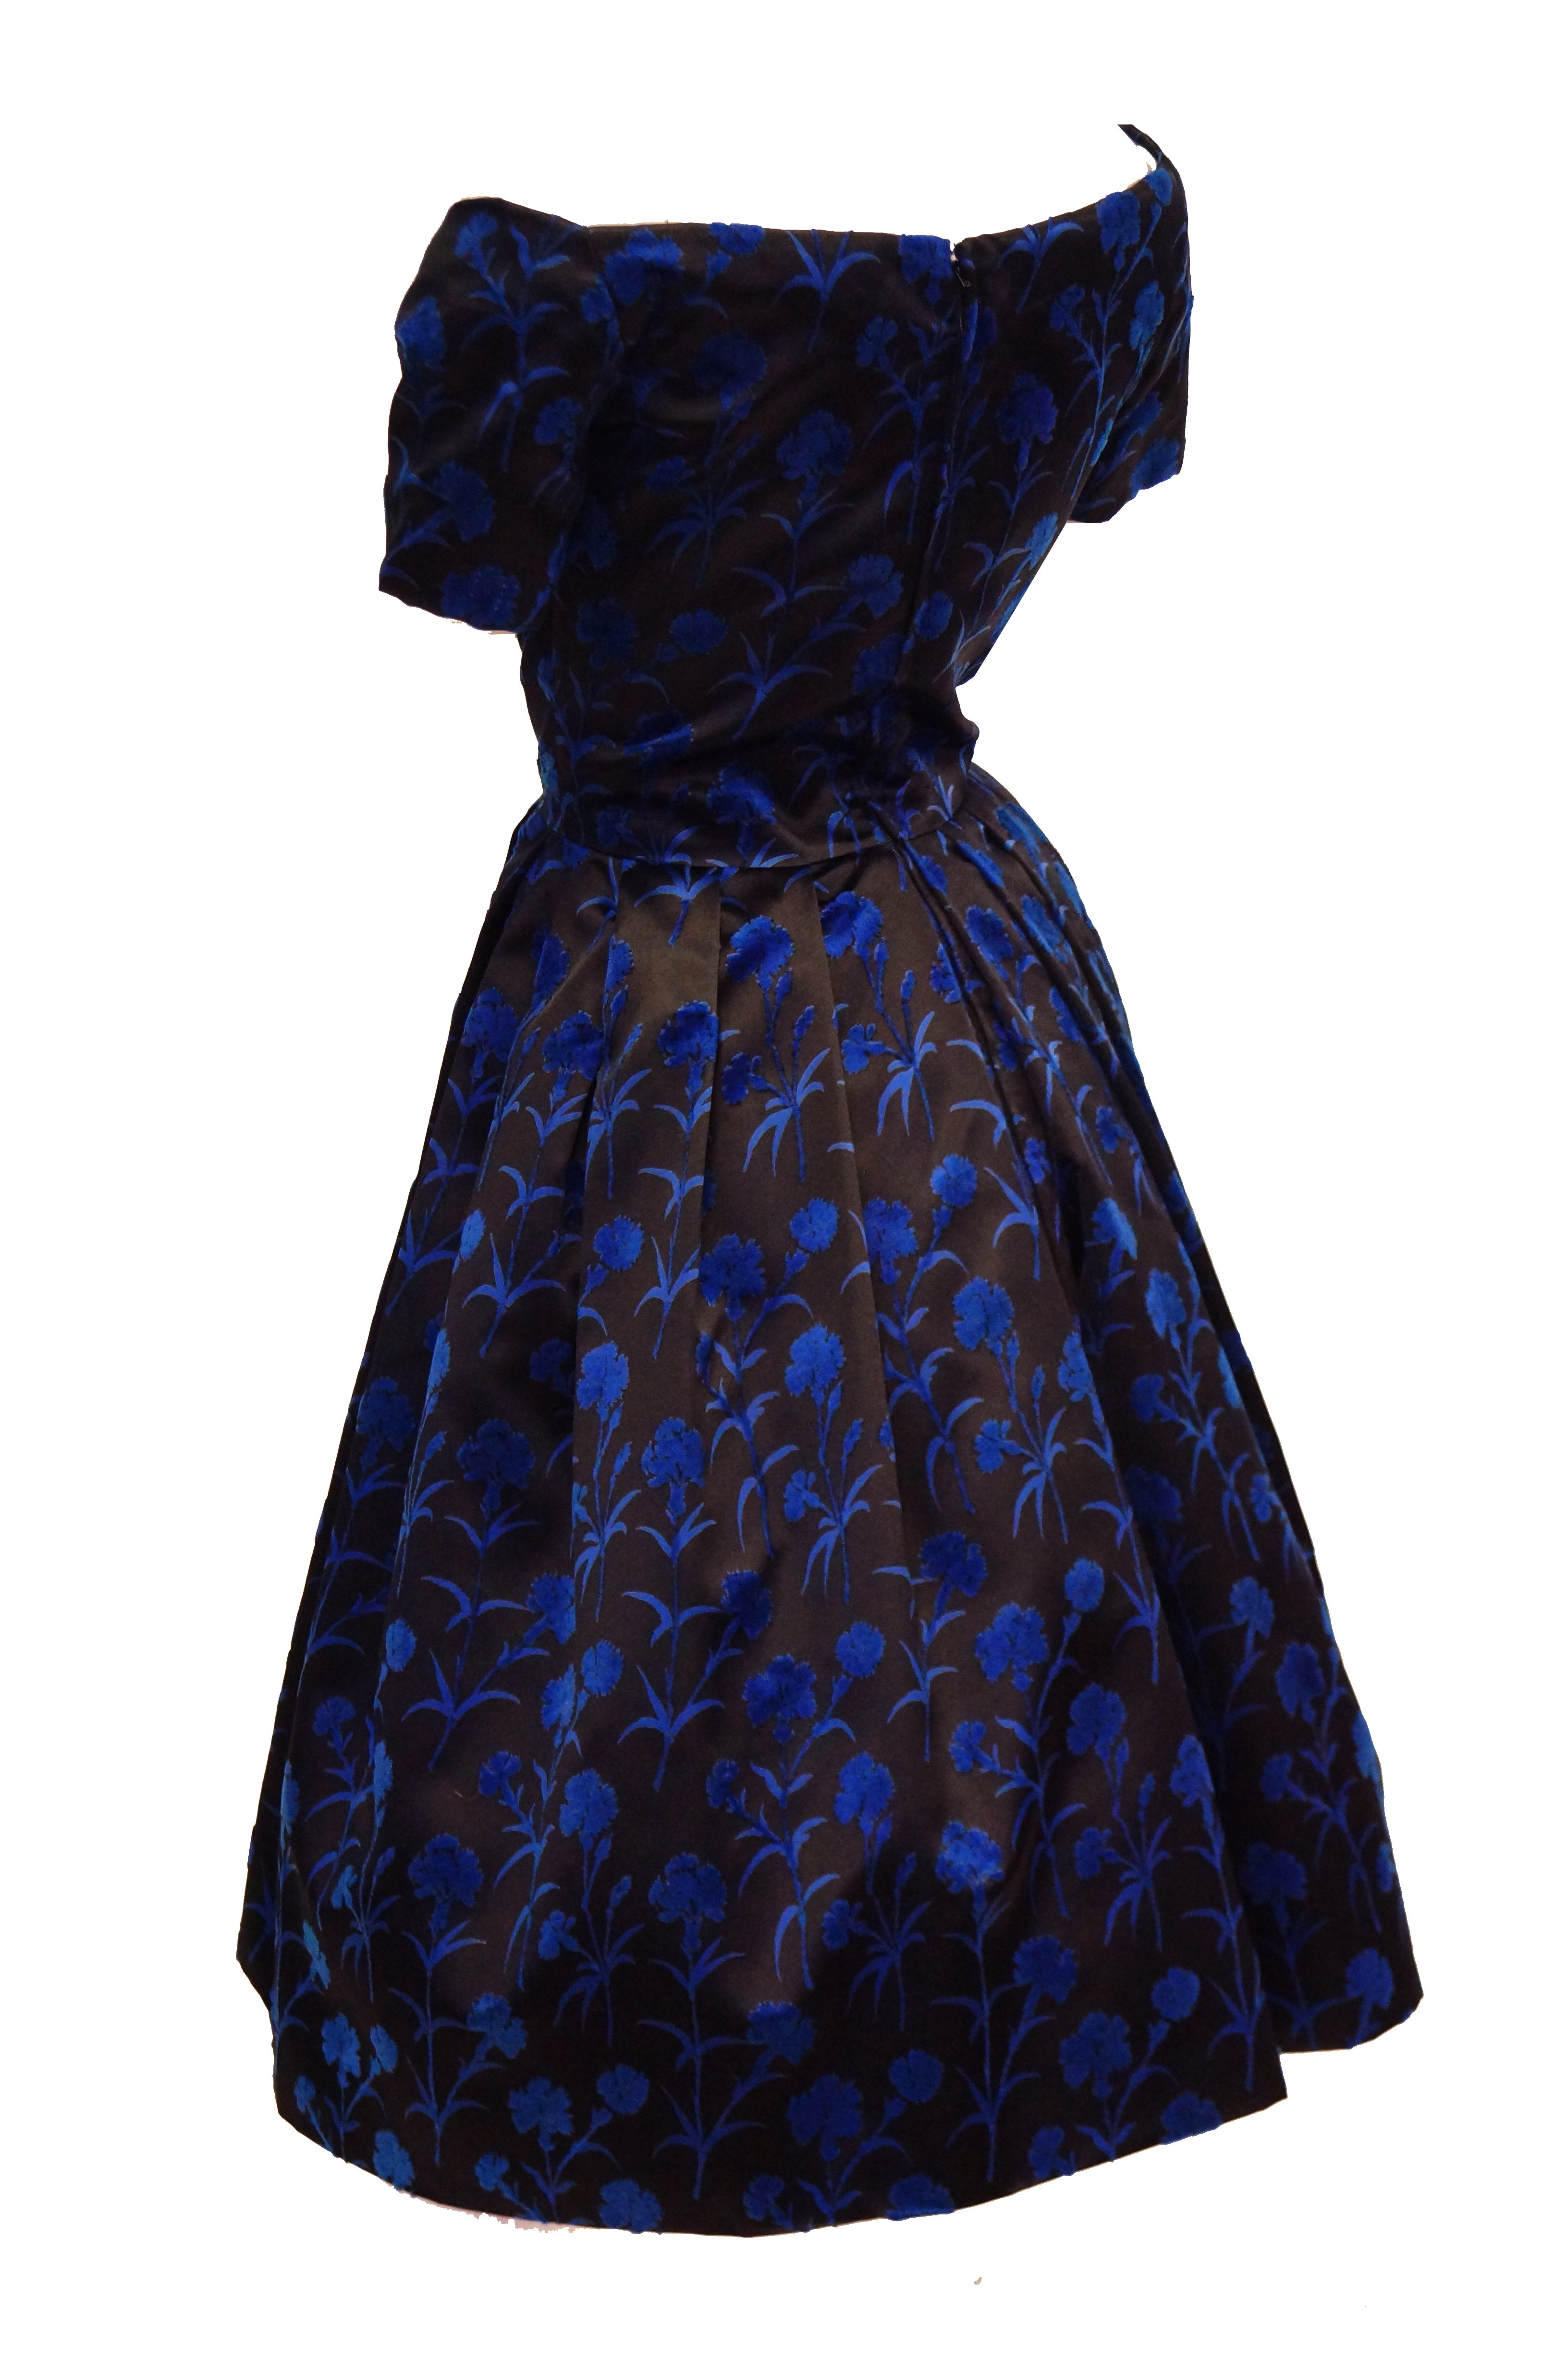 3a05f8d3d3f Important 1950s Christian Dior Couture Blue and Black Silk and Velvet New  Look Dress For Sale at 1stdibs